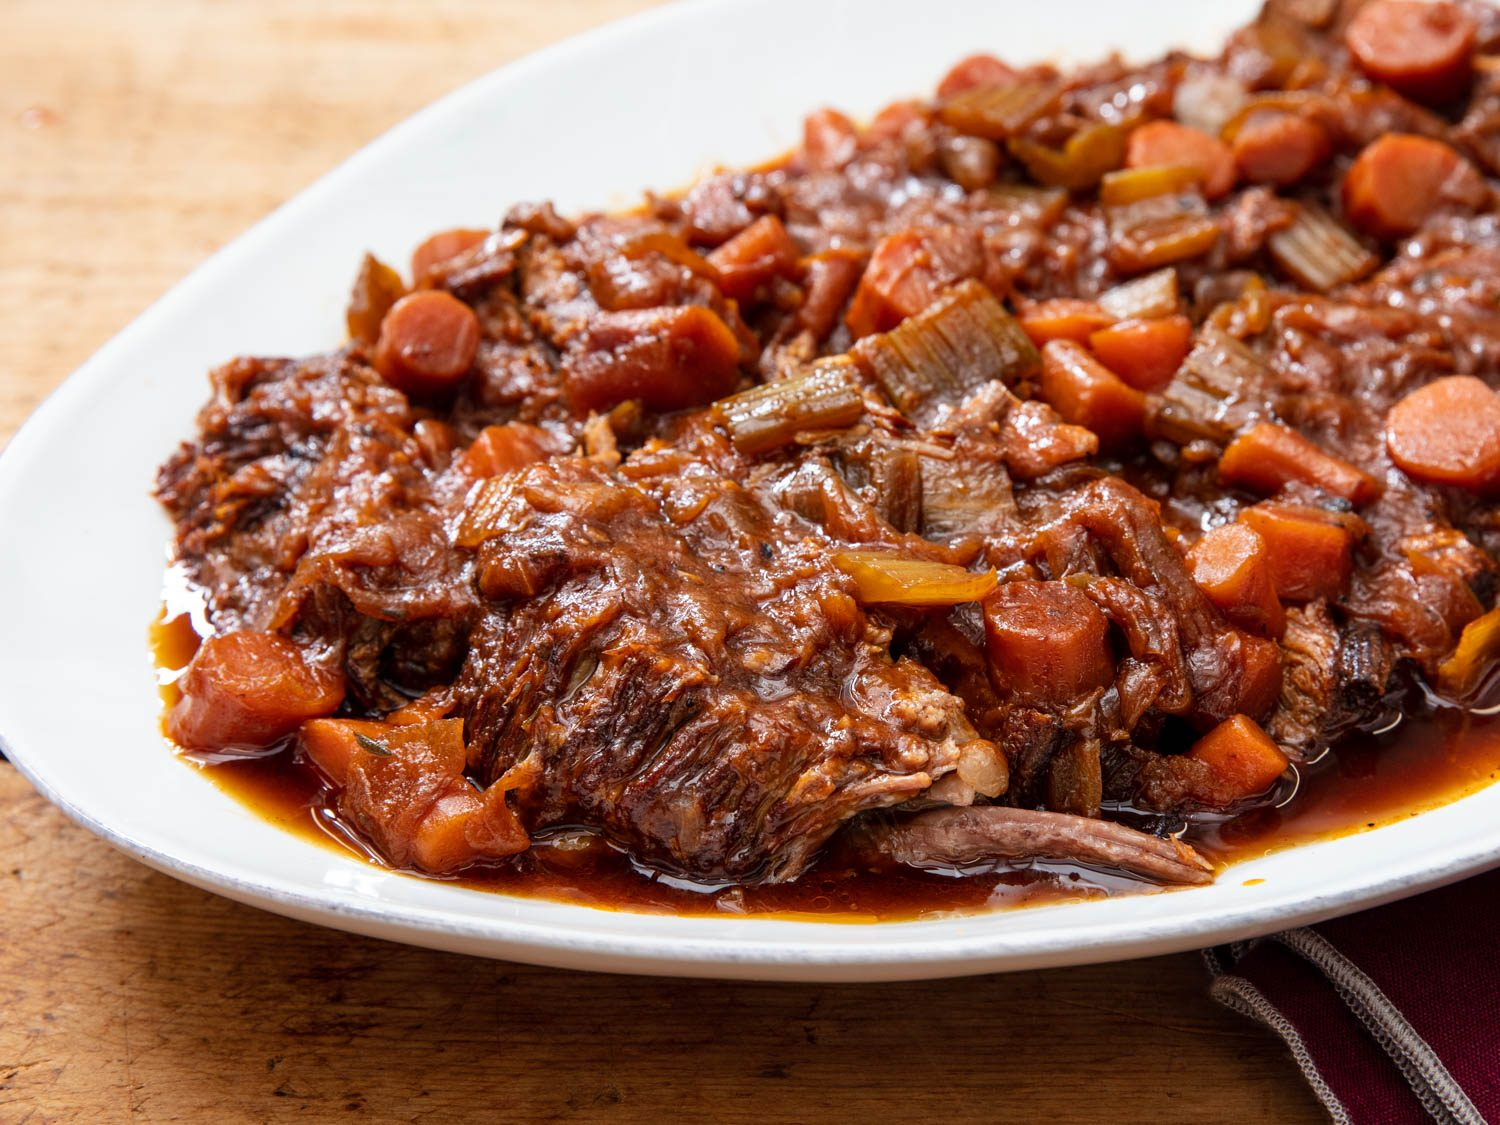 Pressure Cooker Jewish-Style Braised Brisket With Onions and Carrots